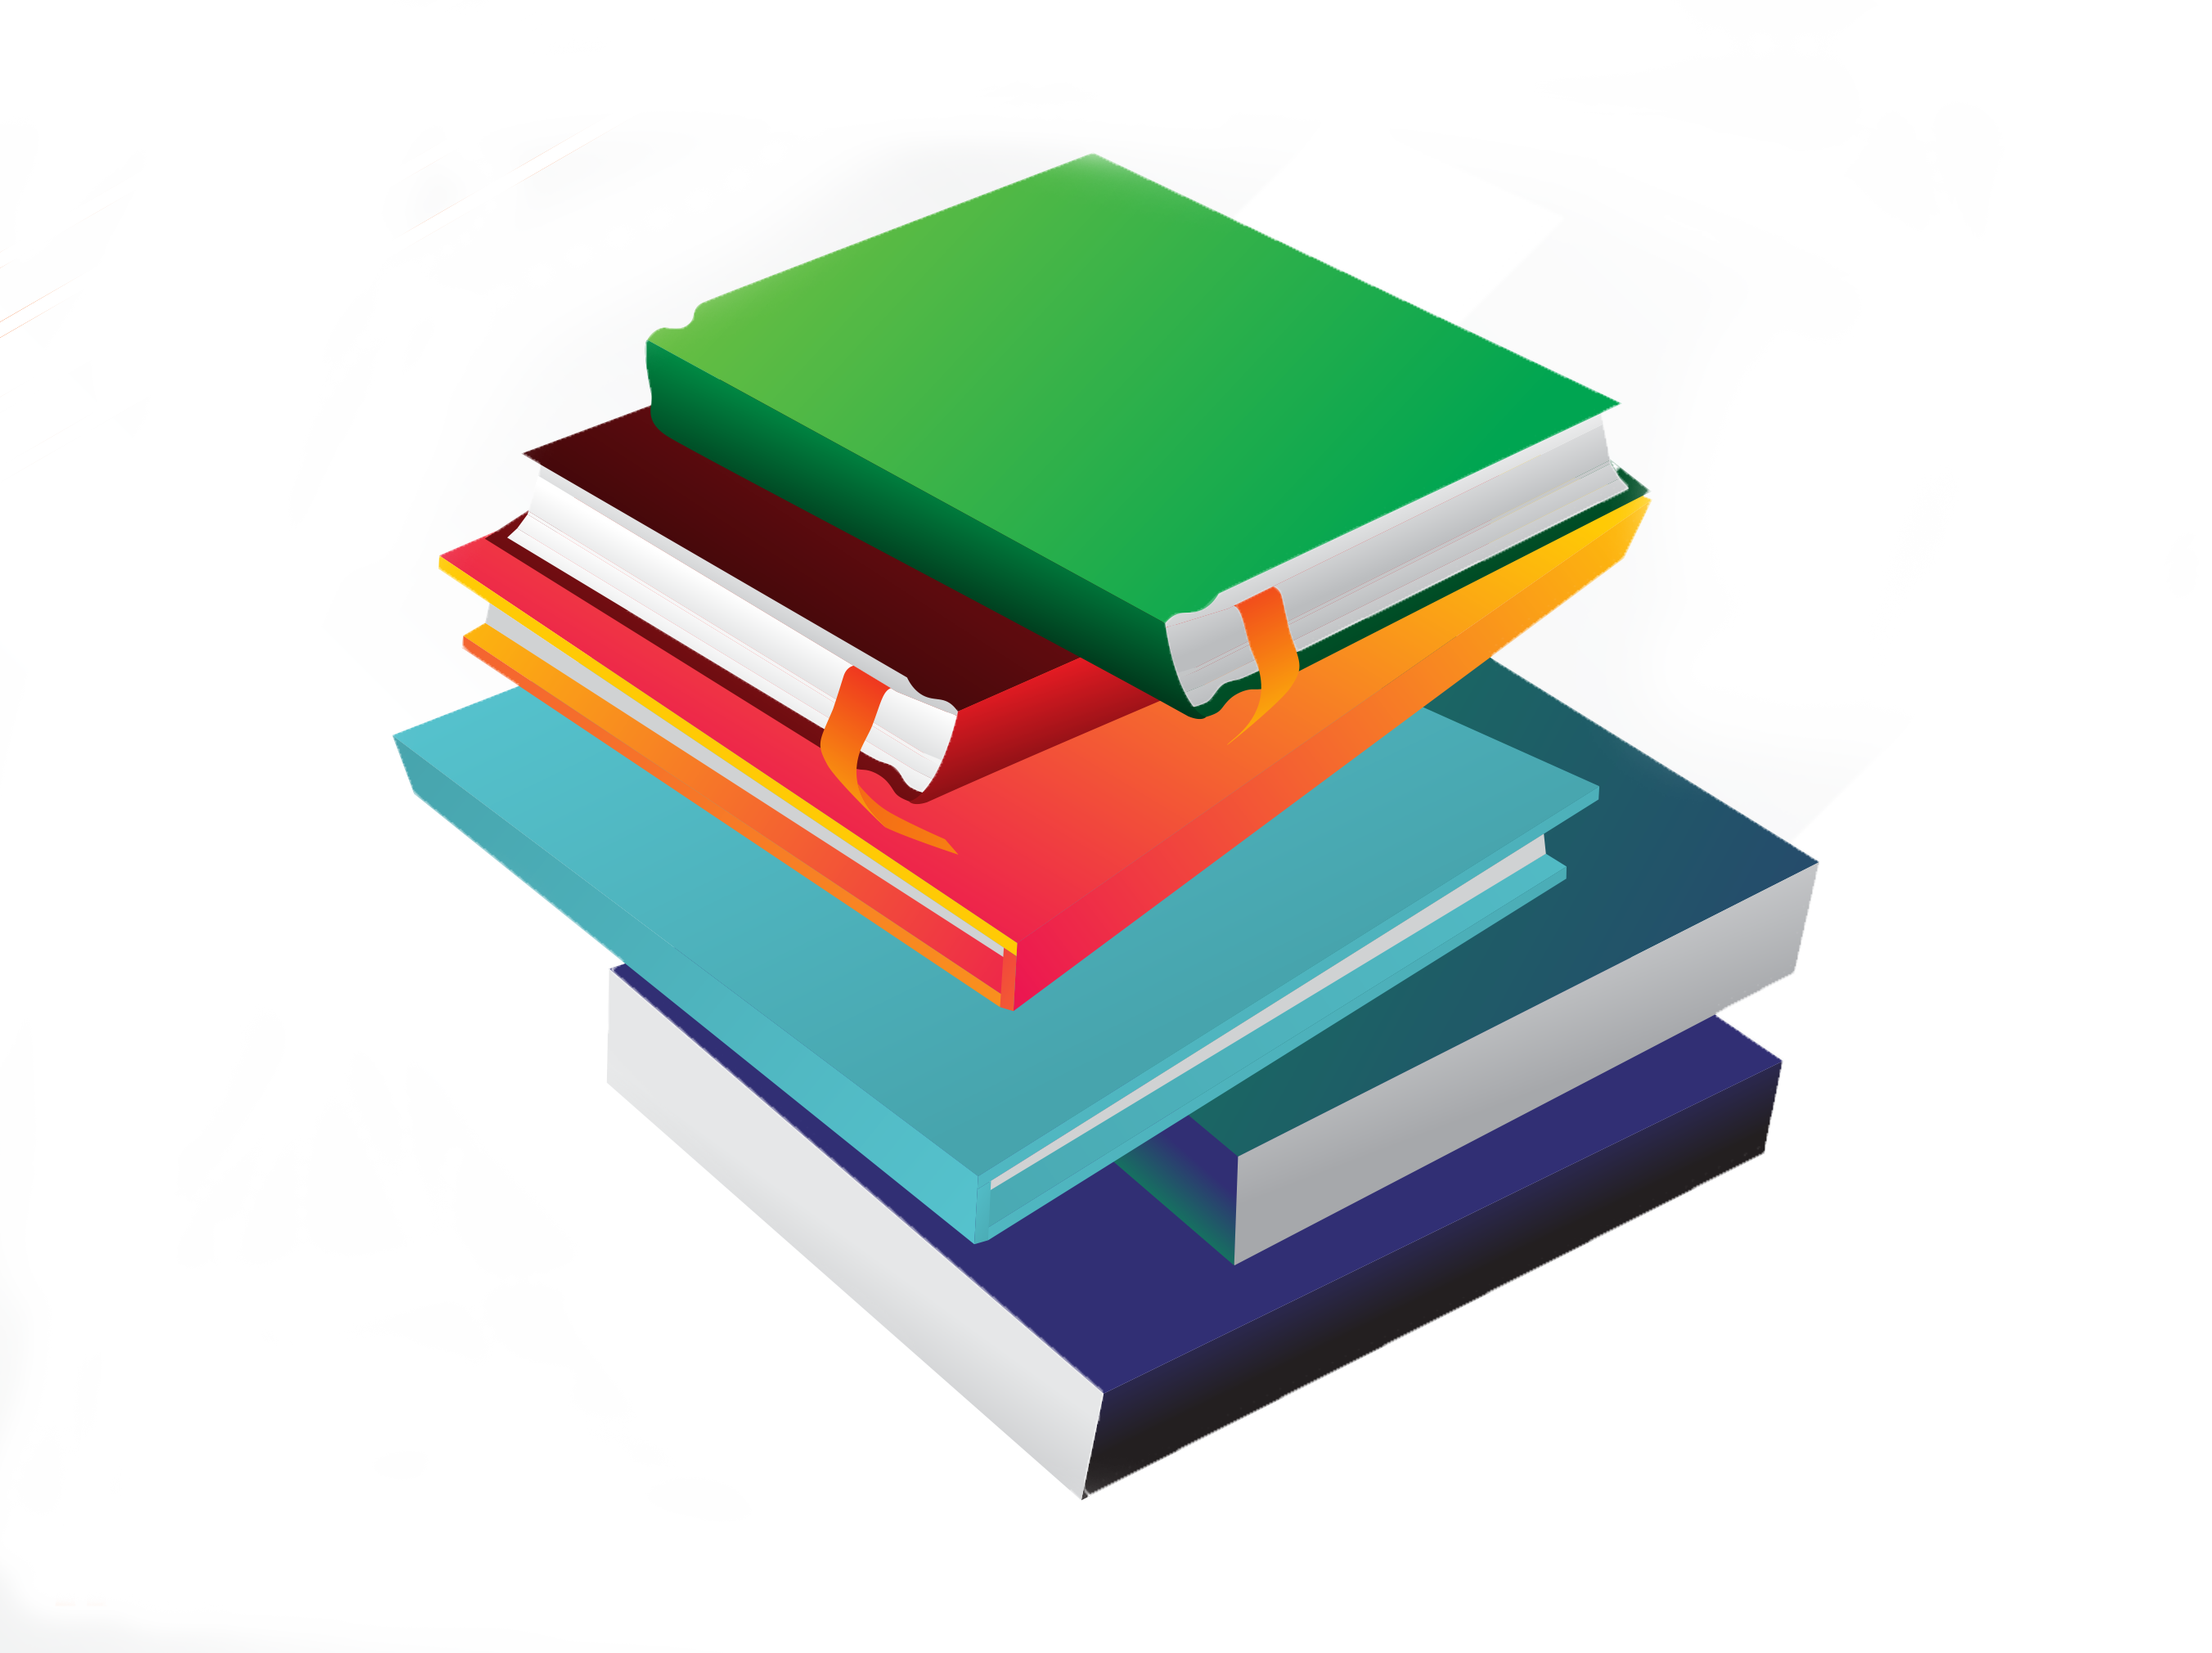 Book piles clipart jpg royalty free stock Book Clip art - Pile of books 2704*2021 transprent Png Free Download ... jpg royalty free stock